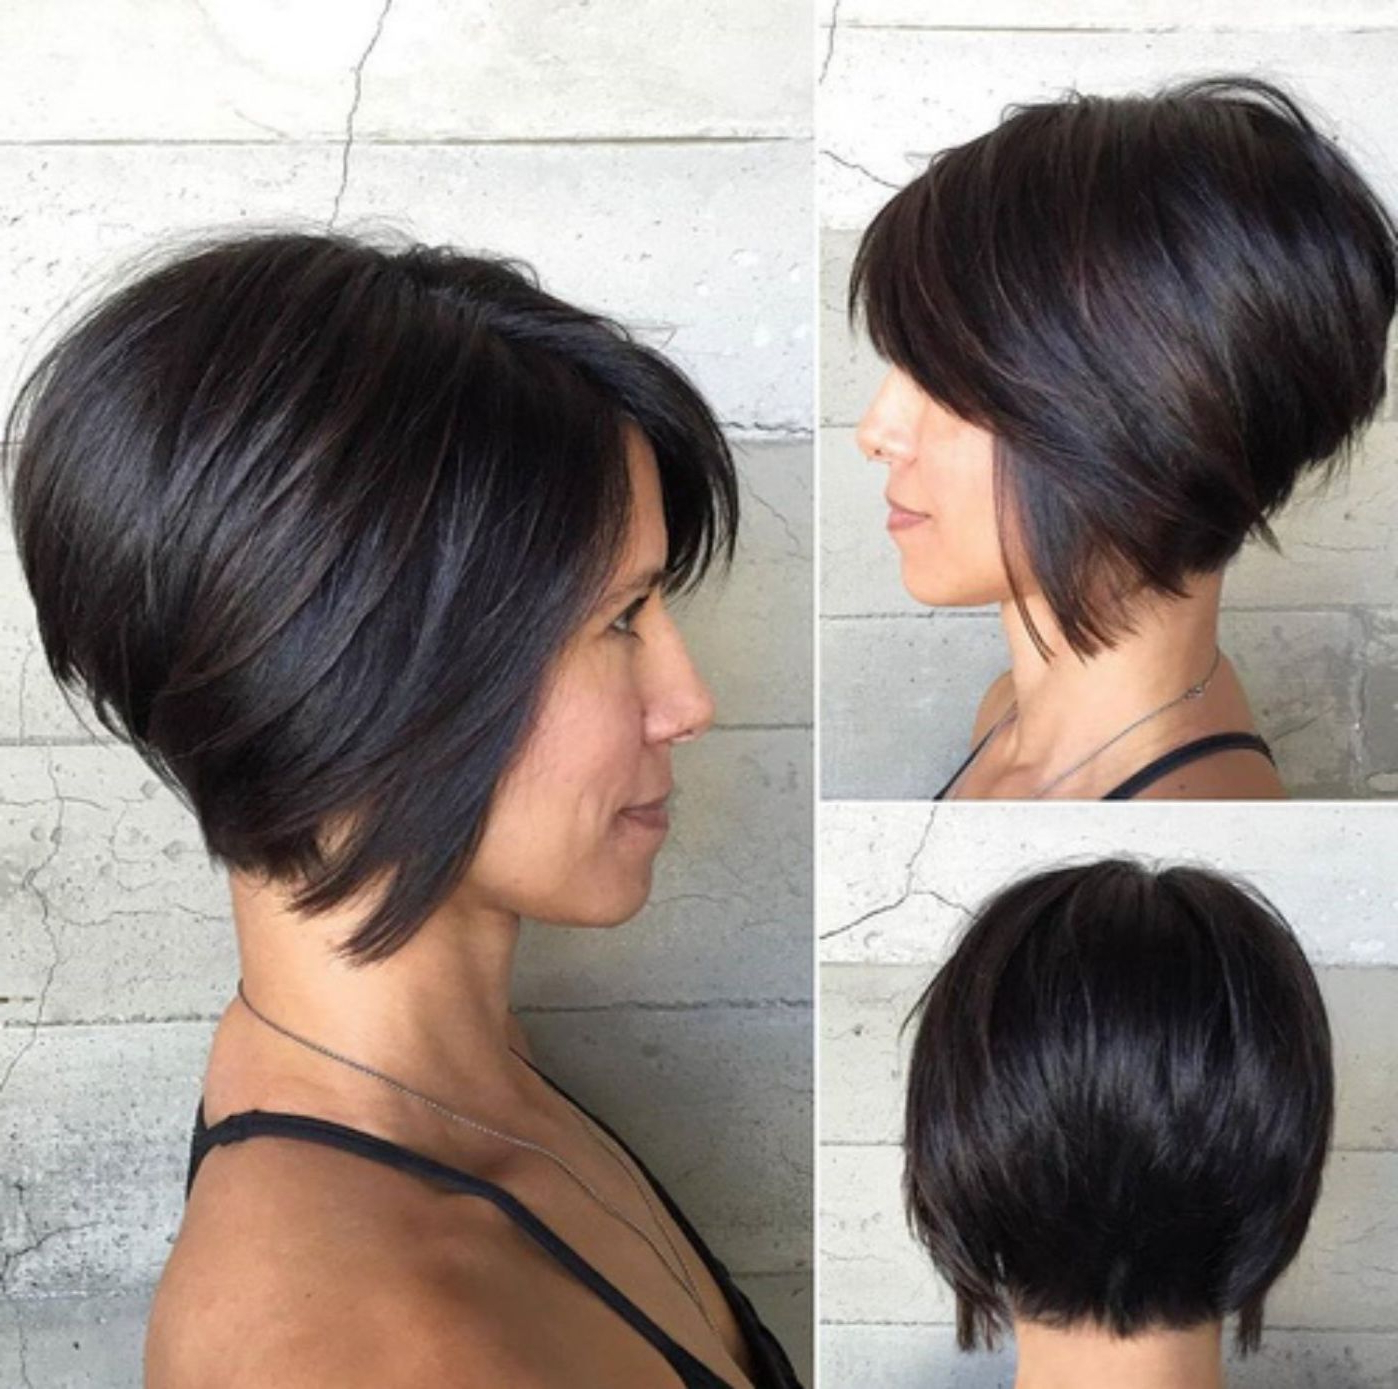 60 Classy Short Haircuts And Hairstyles For Thick Hair In 2018 With Angled Bob Hairstyles For Thick Tresses (View 3 of 20)